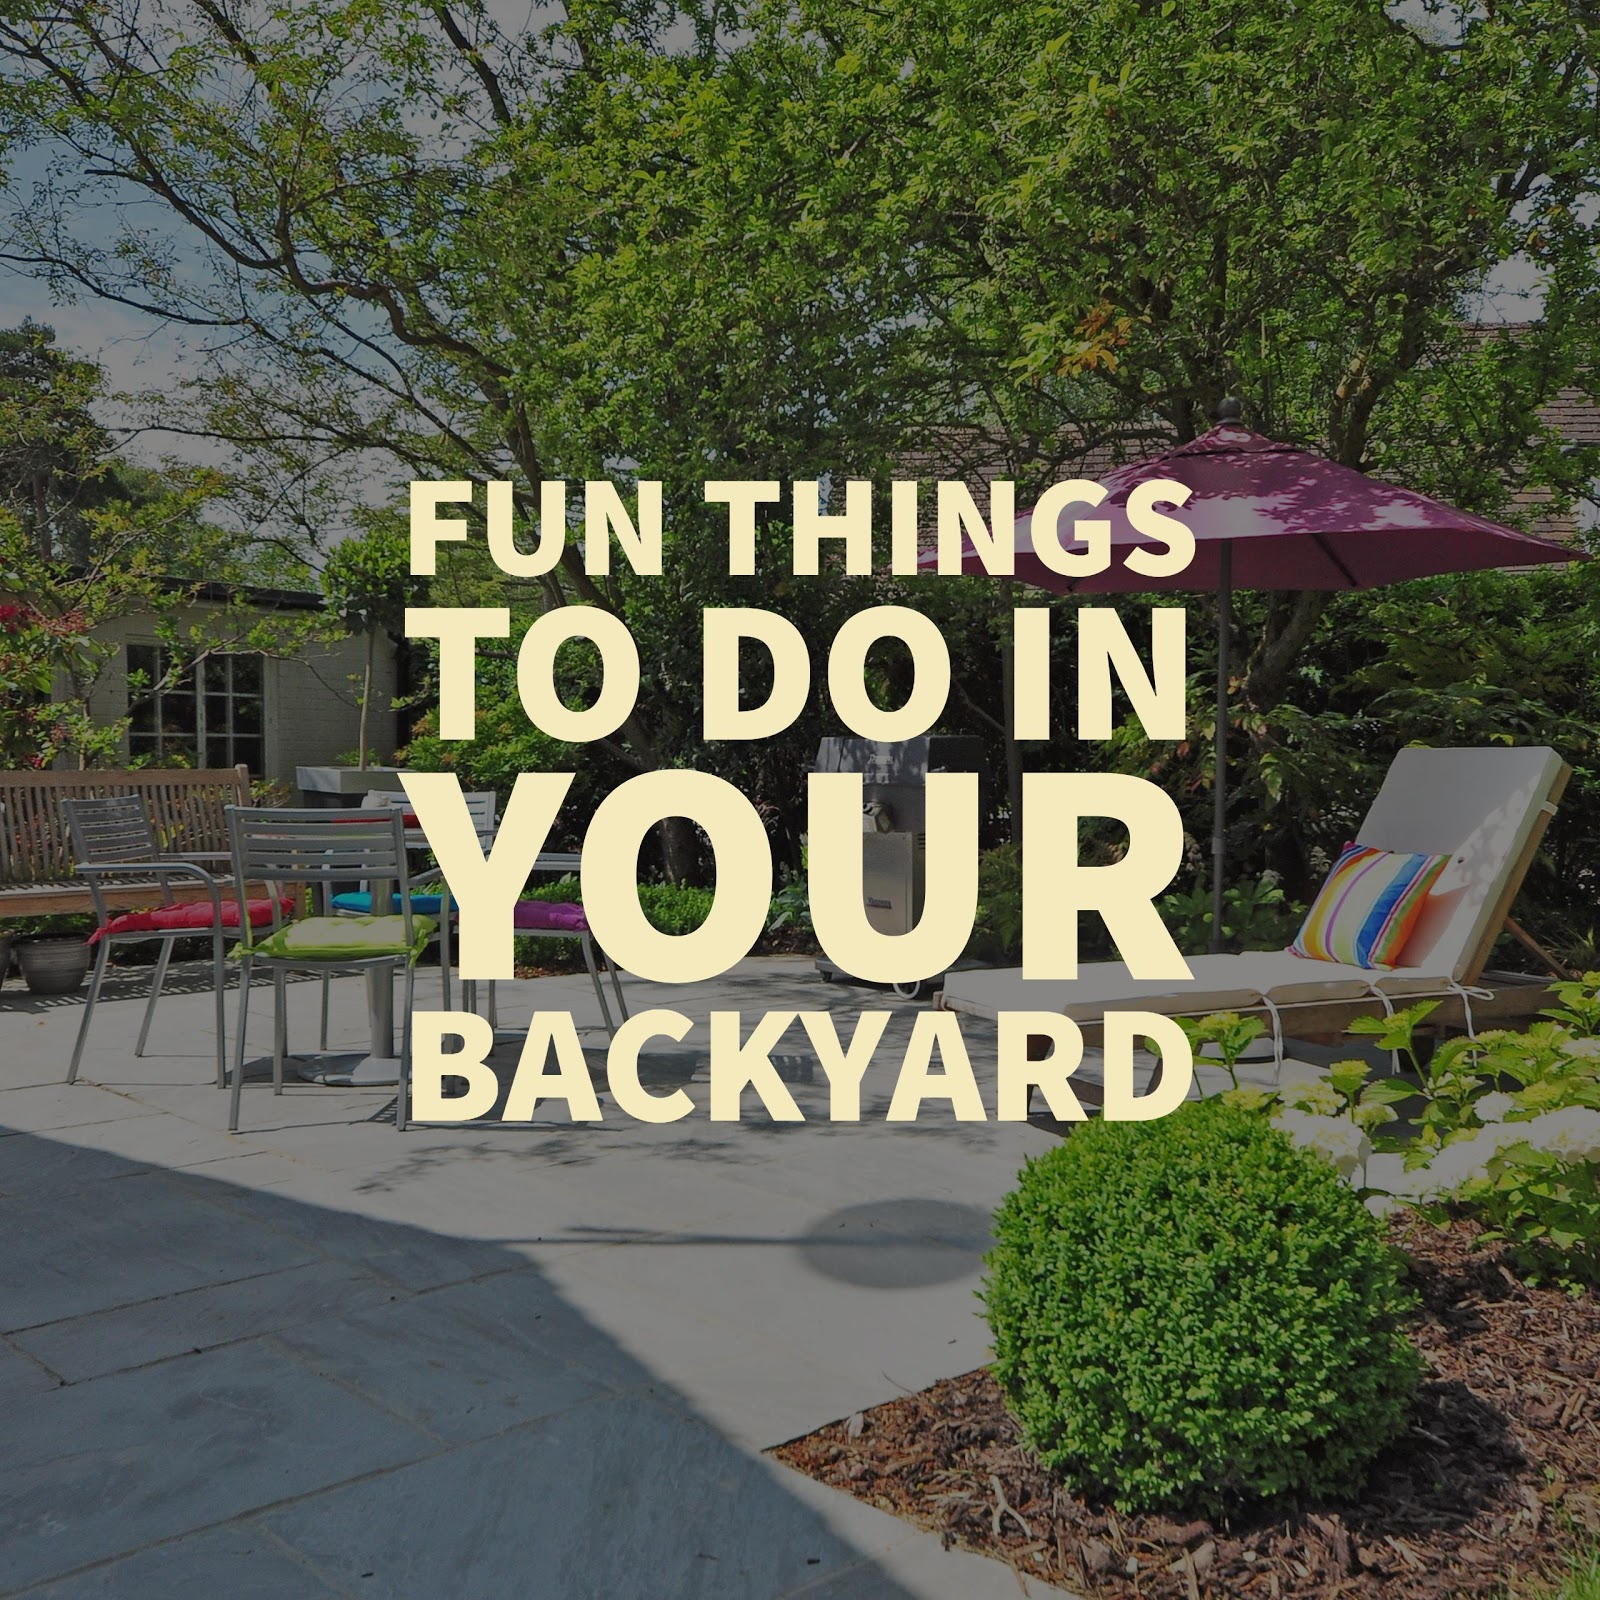 fun things to do in your backyard anne e koons your local real estate expert. Black Bedroom Furniture Sets. Home Design Ideas